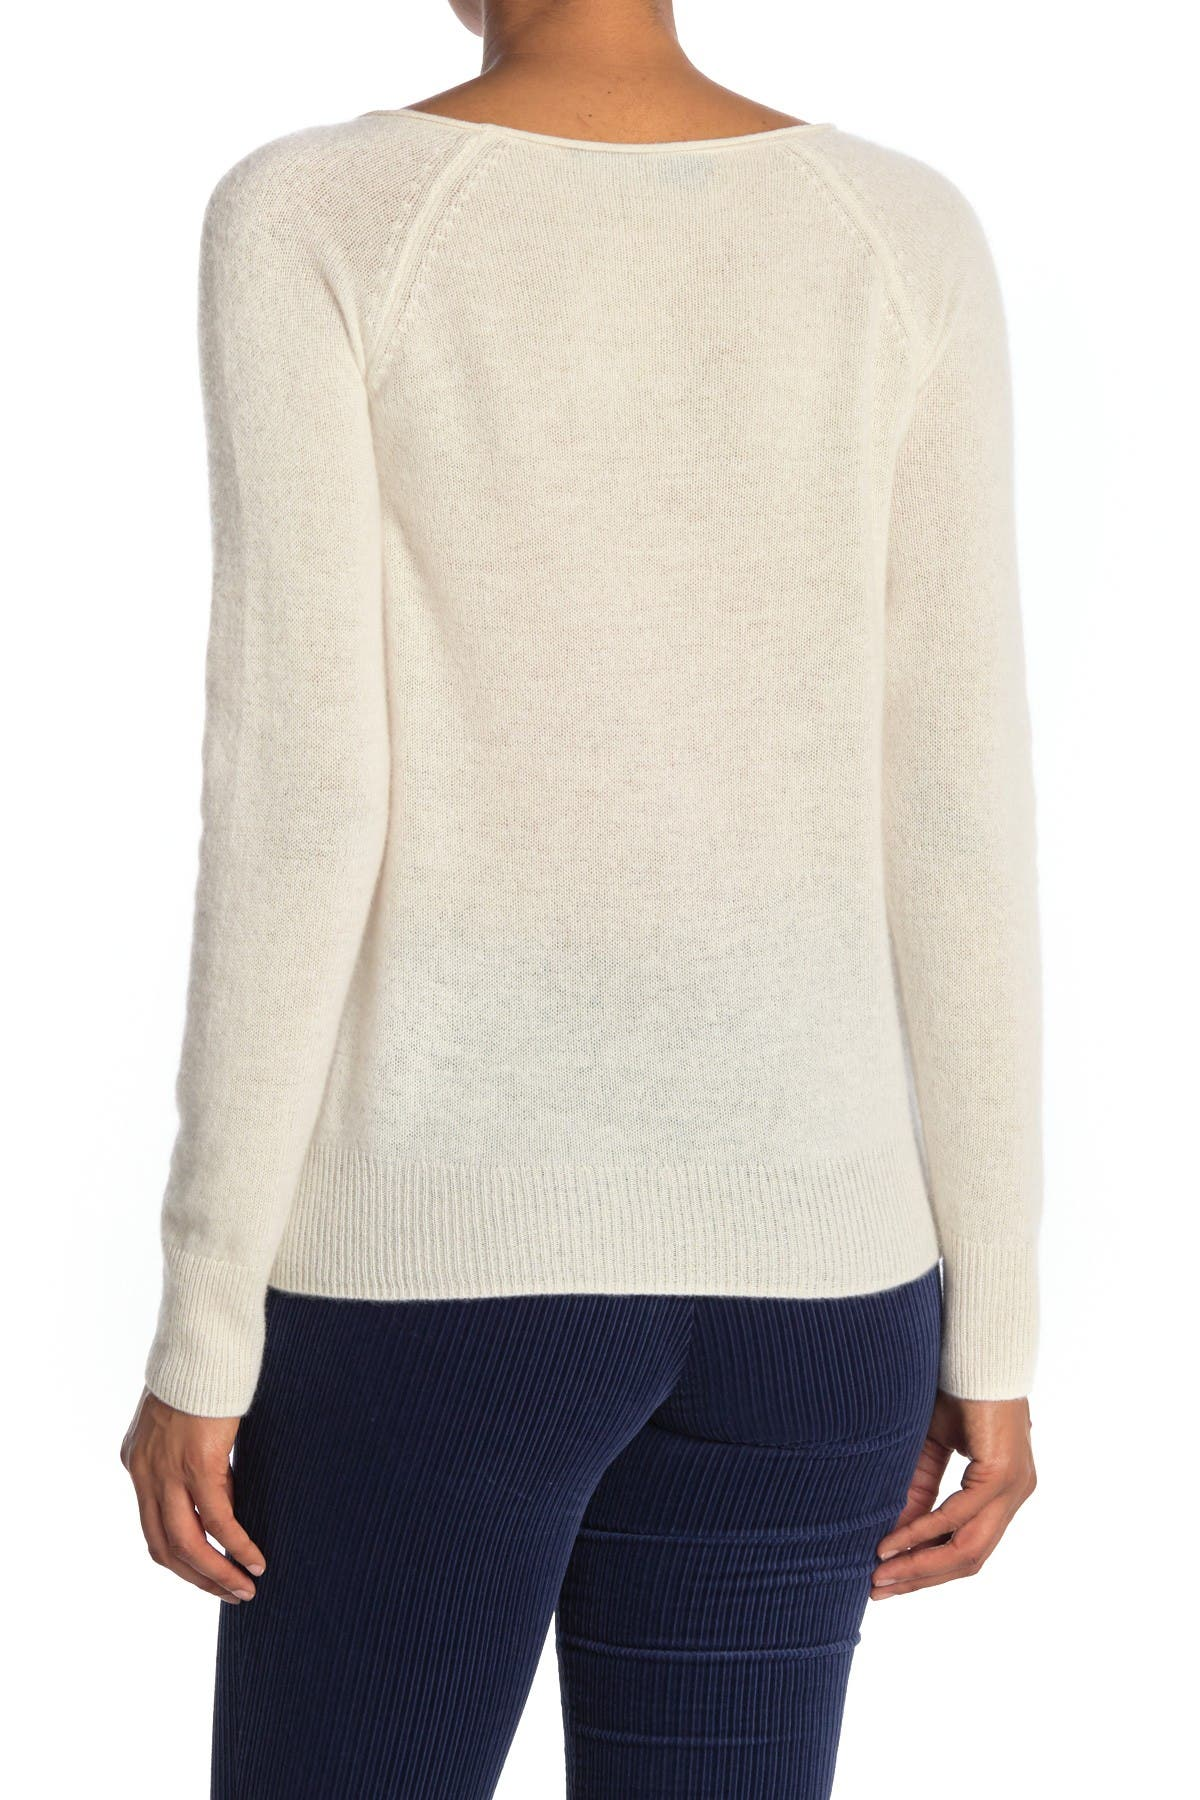 Image of 360 Cashmere Kacey Sweater